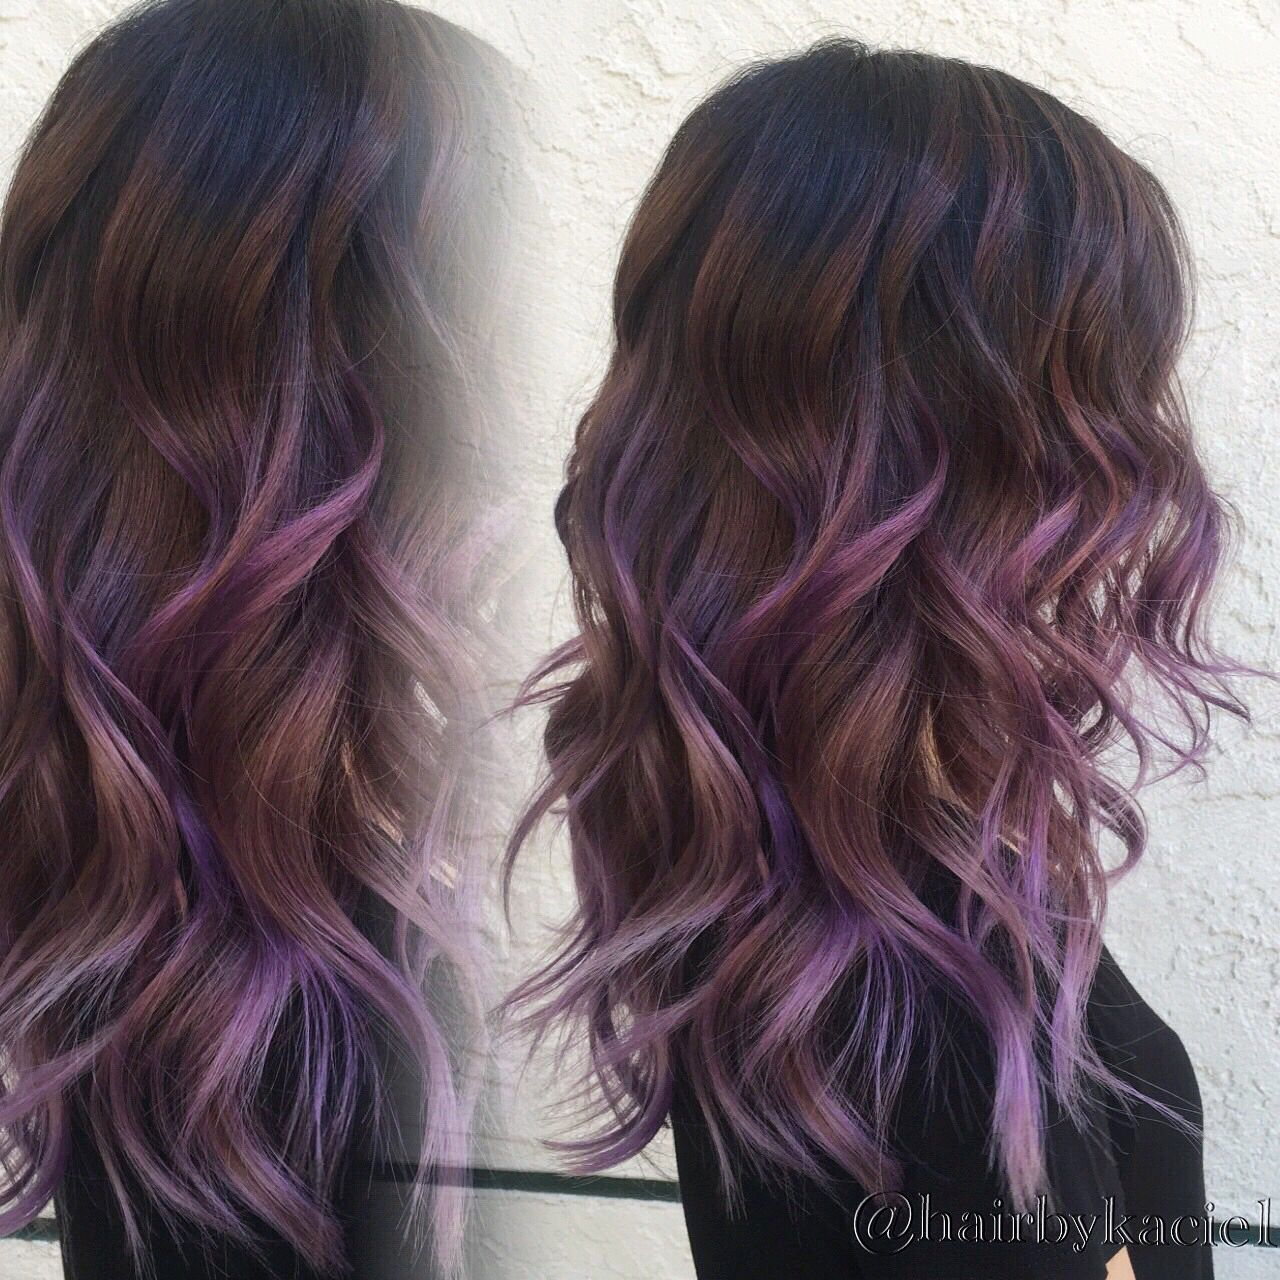 purple ombre balayage black hairstyles pinterest. Black Bedroom Furniture Sets. Home Design Ideas